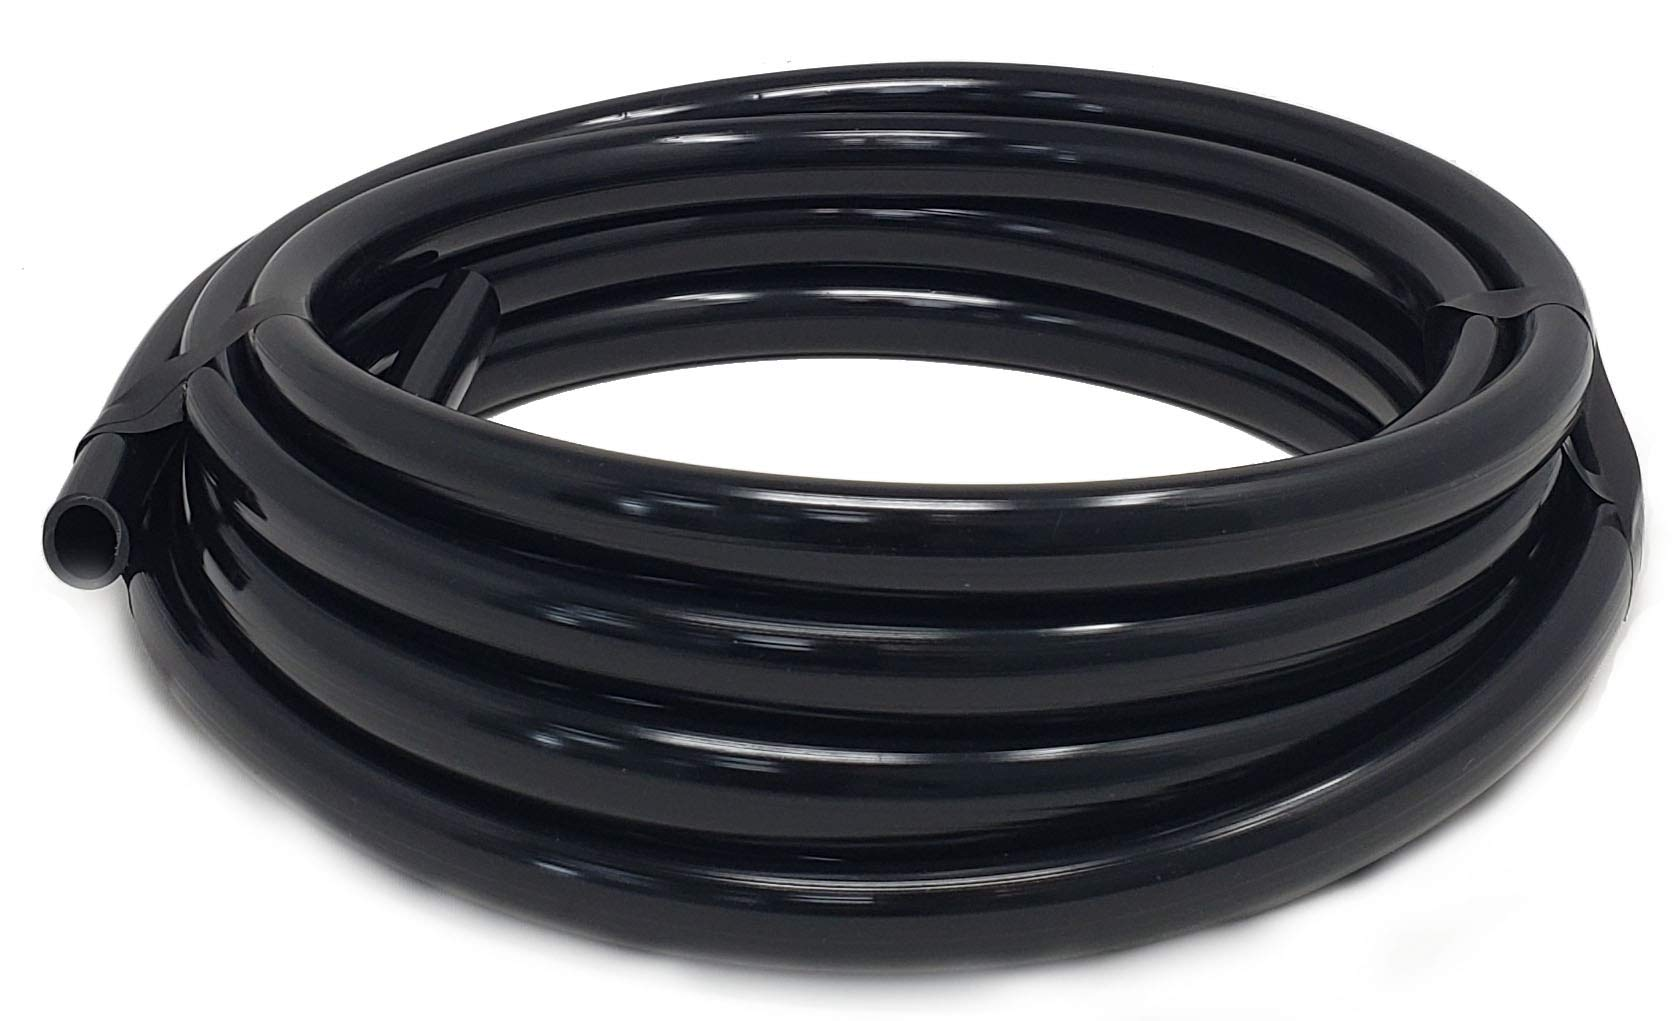 Sealproof 1/2 Inch Vinyl Pond Tubing, 20 FT, Black, Made in USA, UV Resistant, Fish Safe by Sealproof